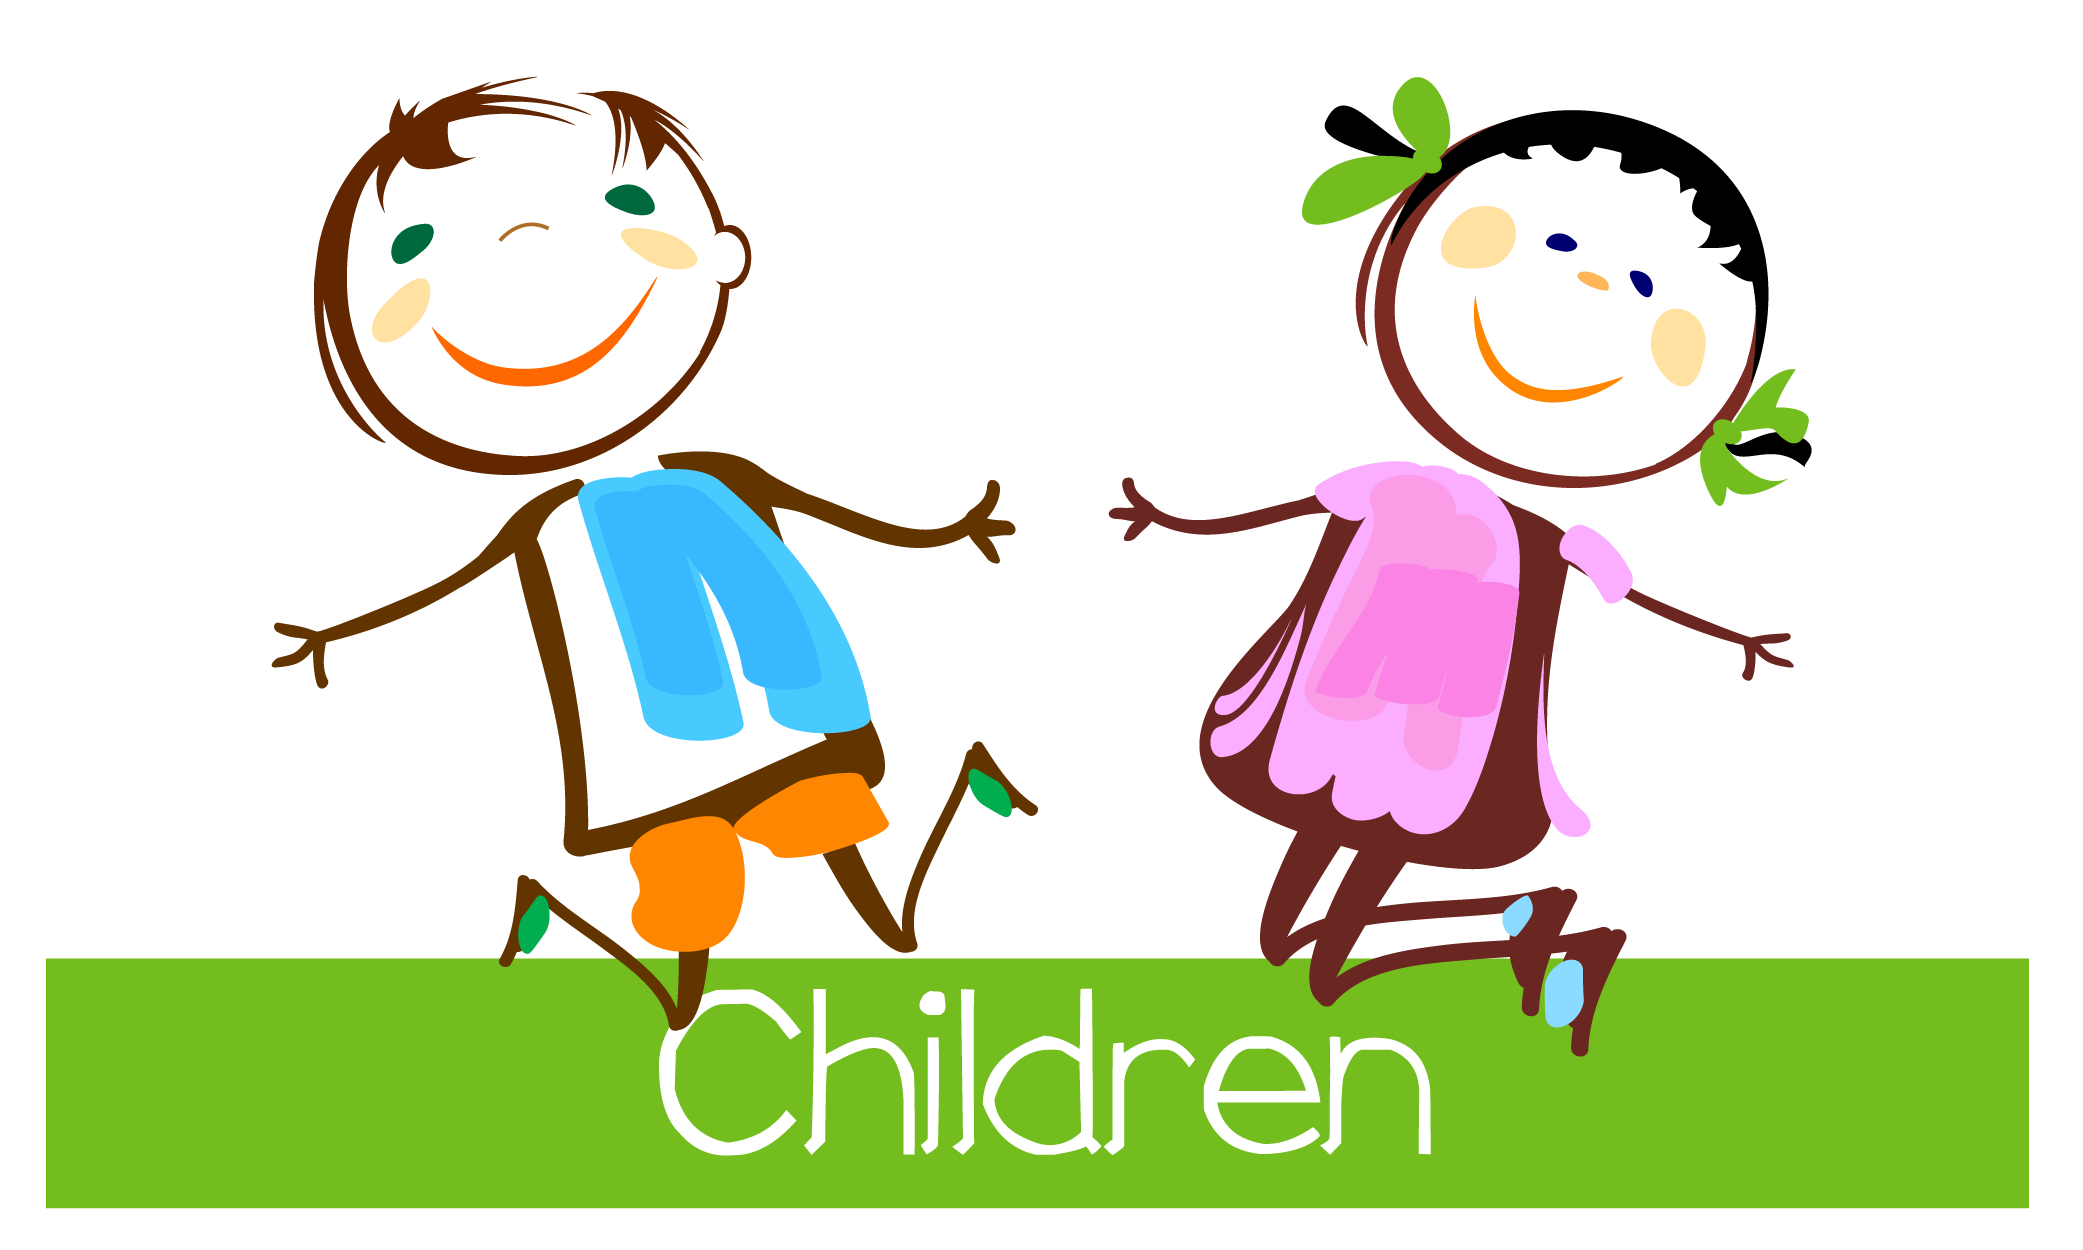 Excited clipart excited child. Somerset nursery school and